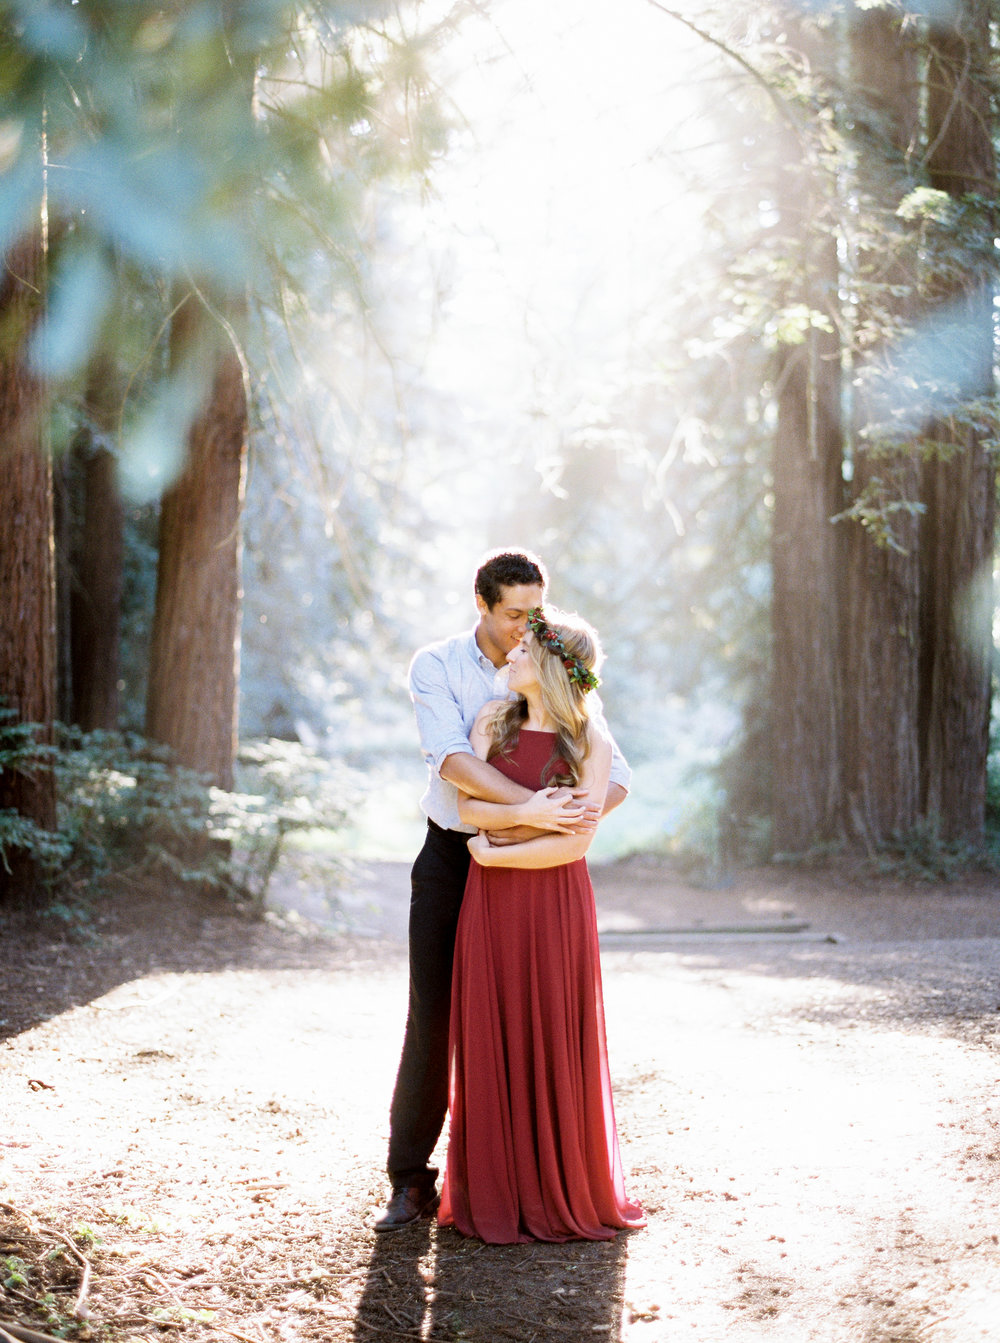 We hired Kristine for our wedding, and just received our engagement pictures back. To say that we are happy with the results would be an understatement. We are thrilled! She made us look amazing! Kristine has a very sweet nature and made us feel so comfortable, and that really came through in the photos. We took our pictures at Redwood Regional Park, which is a huge place. She went to the location early to find the perfect places in terms of light, and views, which was awesome! She found the most incredible spots. Before I worked with her, I was stressed about every element of the wedding venue, constantly wondering where we would take getting ready pictures, pictures with family, etc. I'm not anymore, because I know Kristine's professional/artistic eye will find the perfect spots! We spent a lot of time researching photographers and going through portfolios, and we are so happy with our choice! - -Marysia and Max